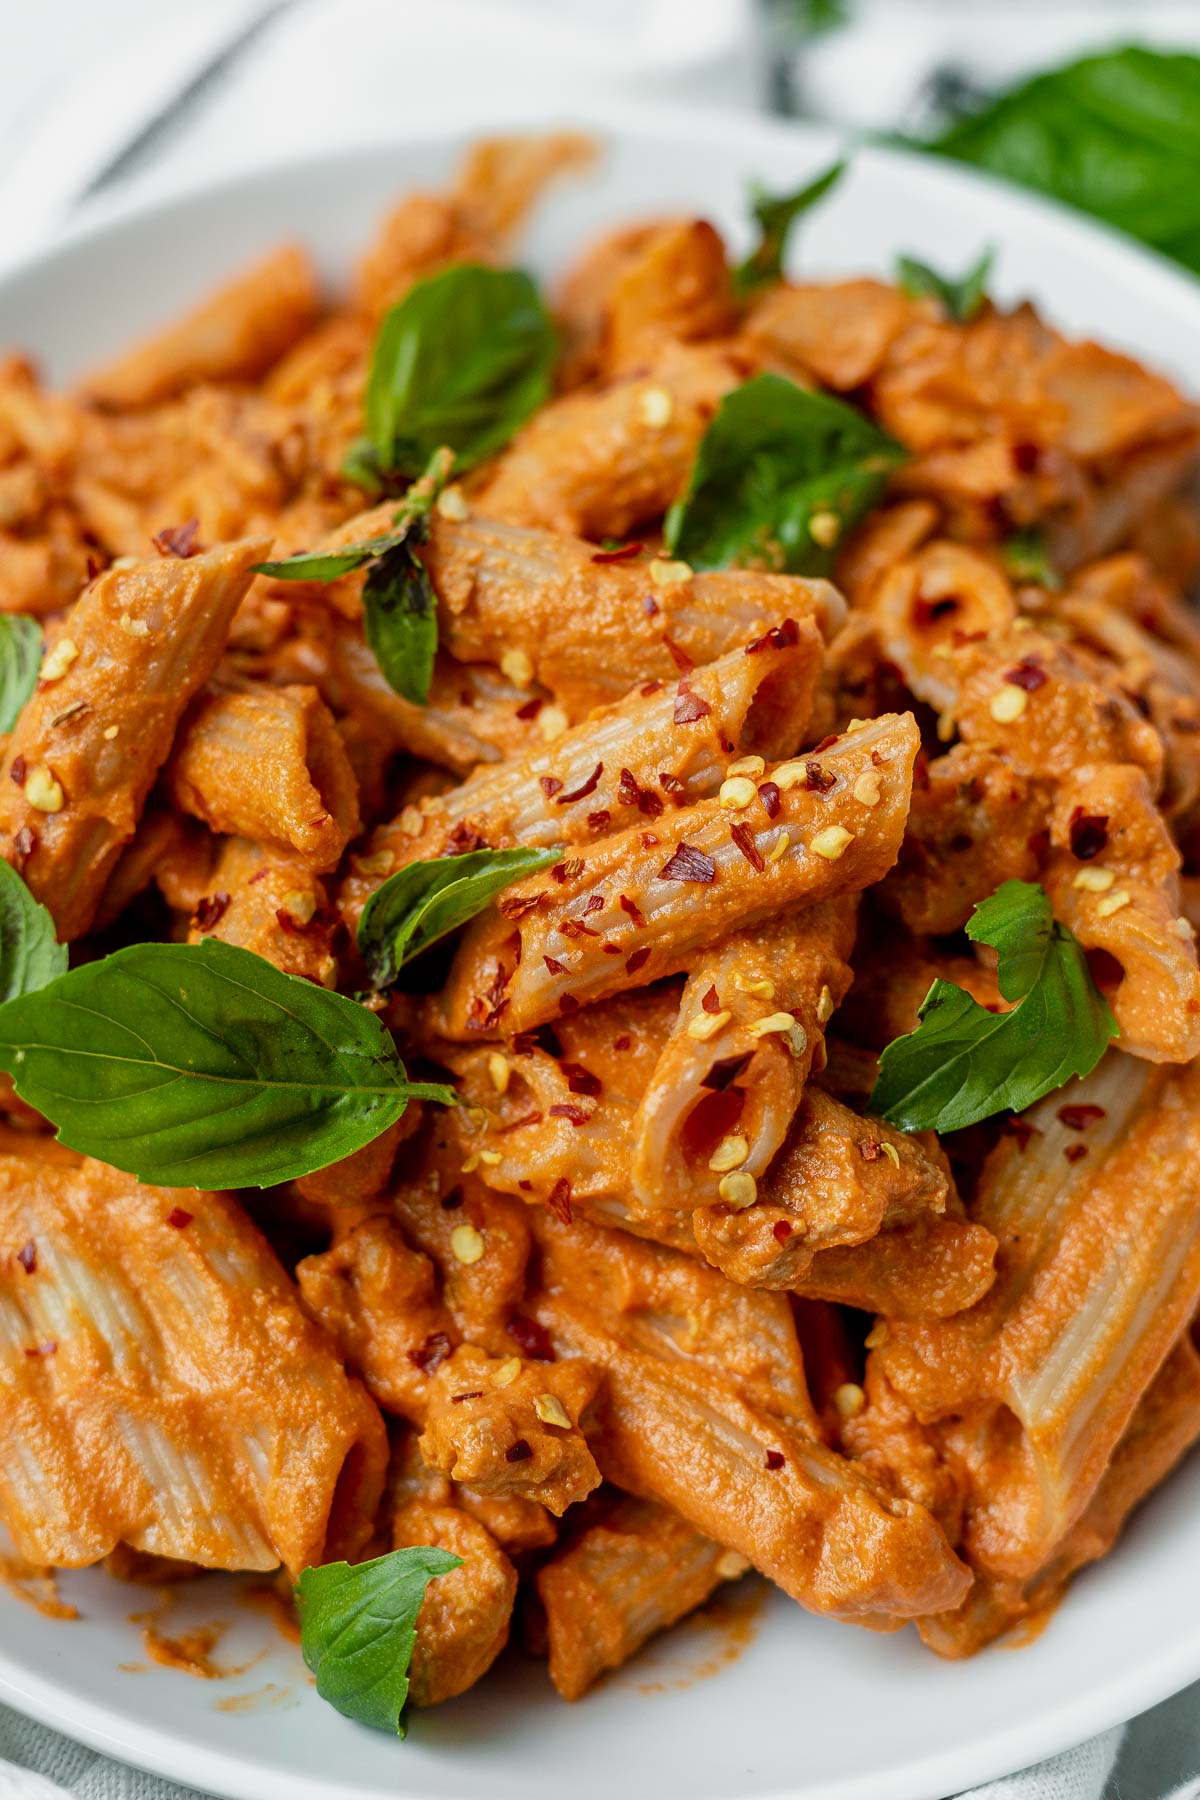 creamy penne arrabbiata with red pepper flakes and fresh basil